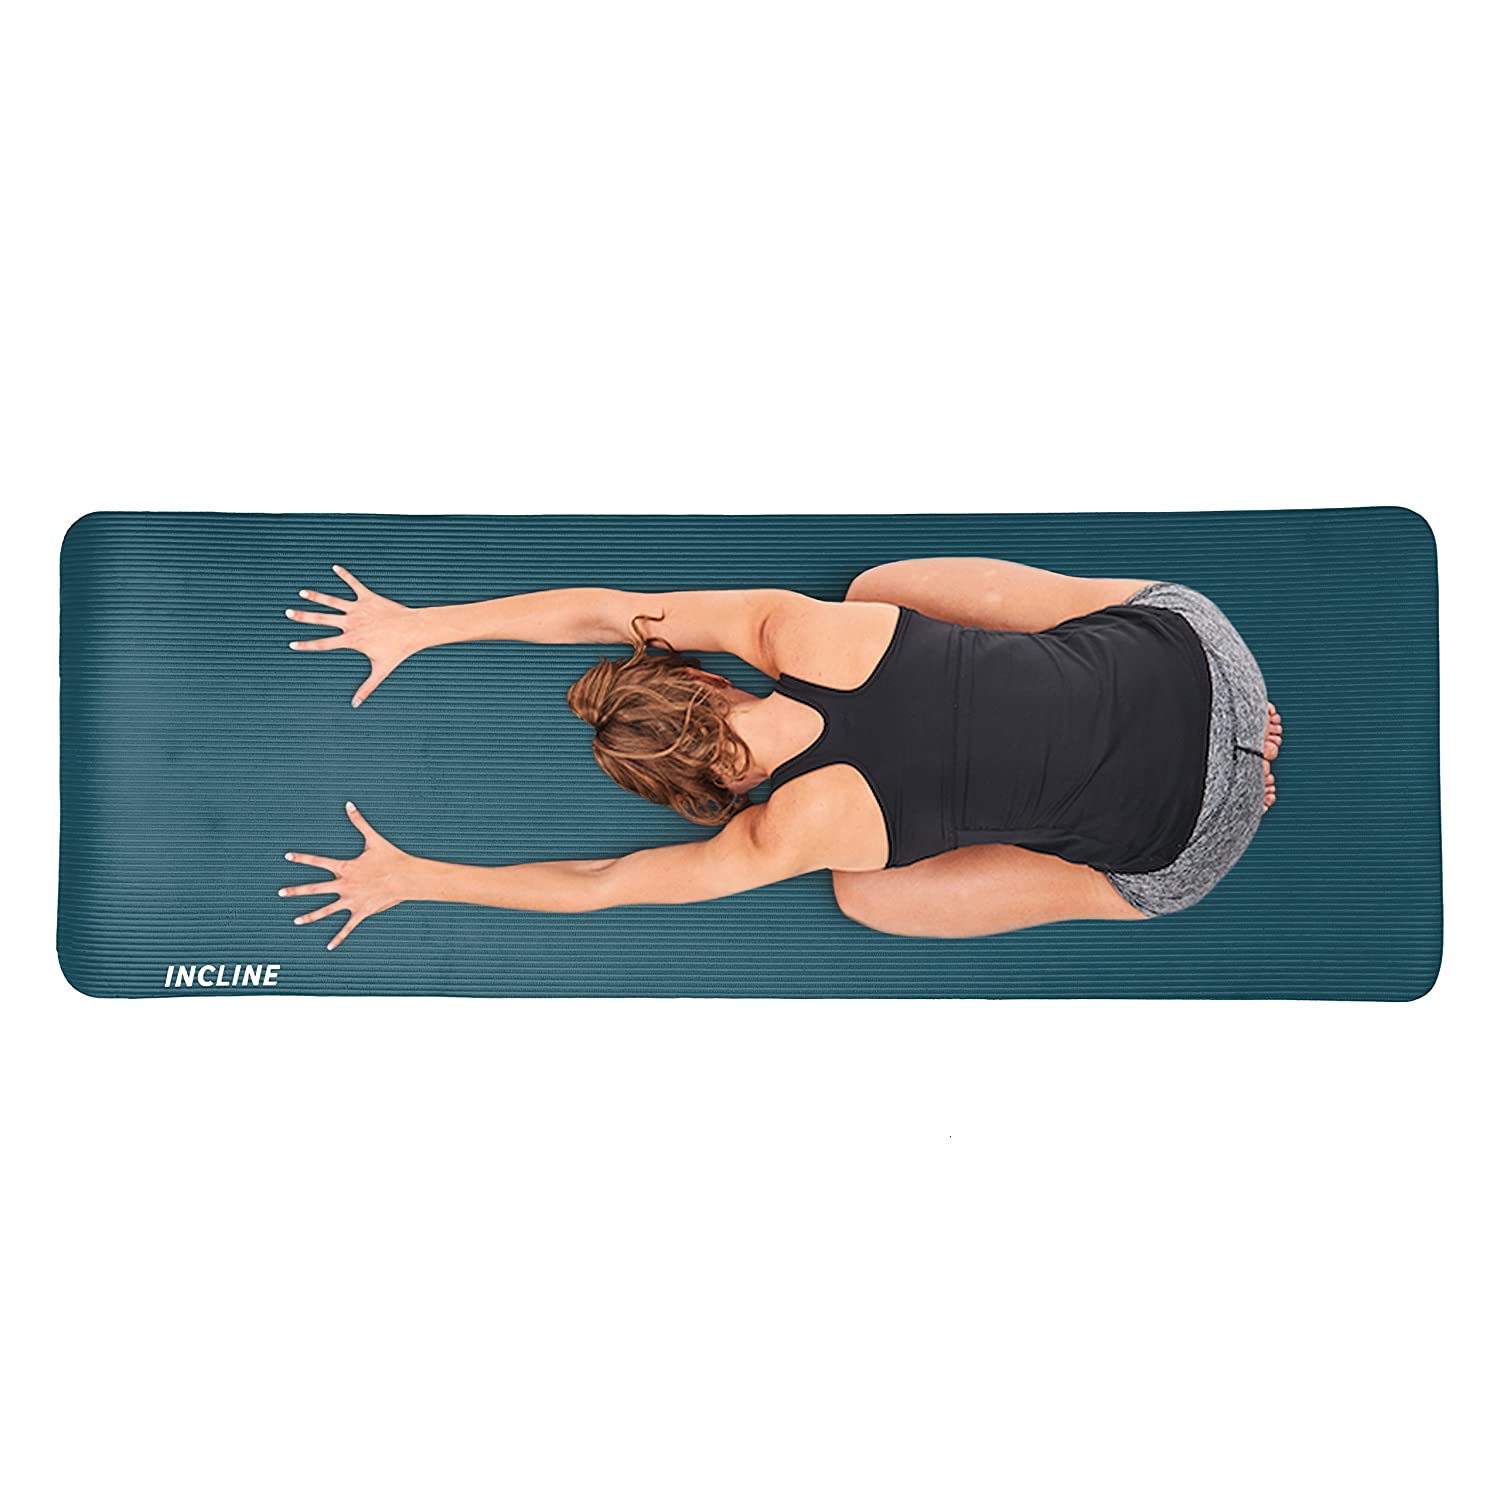 Stretching Floor /& Fitness Exercises Incline Fit Extra Thick Exercise Mat w//Carrying Strap Pilates Meditation Non Slip /& Comfortable Workout Mat for Yoga